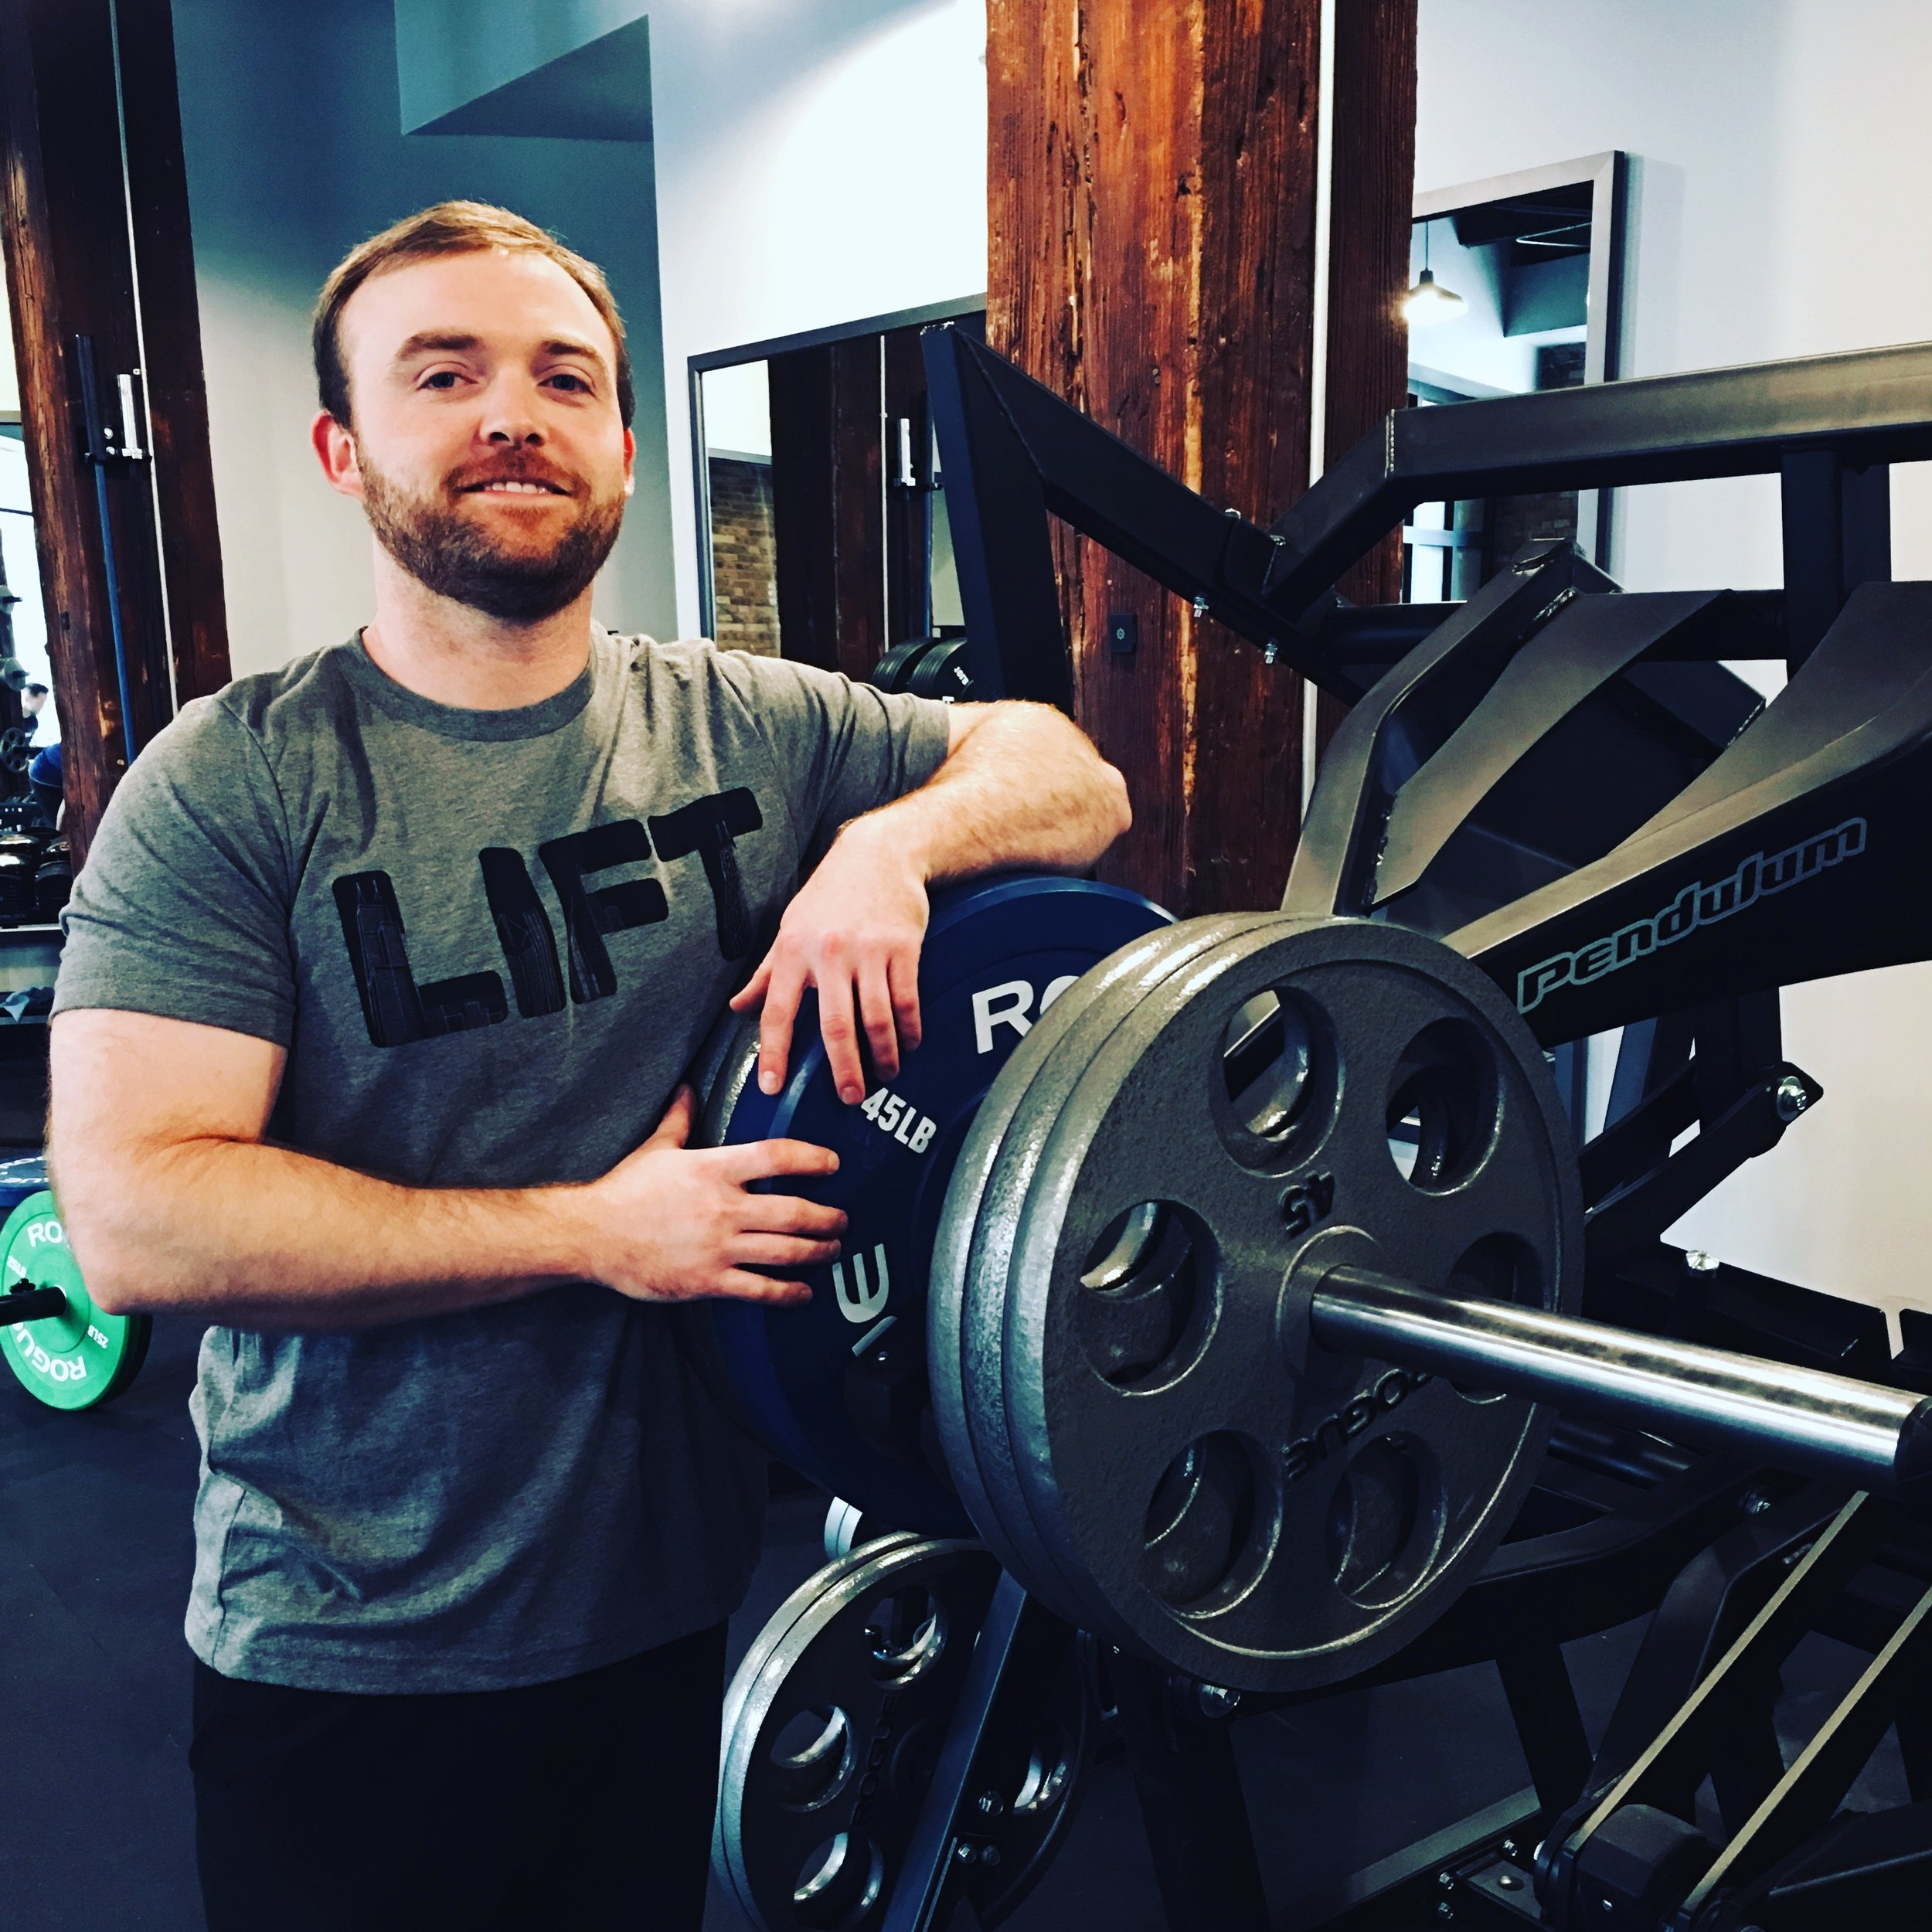 Kyle Slaven - Strength Coach - My passion for strength training started in high school. My dad had acquired some old equipment from the Ball State University weight room and introduced me to weight lifting. I immediately fell in love with the mental and physical feeling of putting in hard work and seeing the numbers start to go up. After high school sports were done, my passion with strength training continued into college. At Ball State, I studied exercise science with a focus on health and fitness. I spent some time in the Olympic weight room at Ball State as well. After college, I came to Chicago to wrap up my undergrad. I have spent the last 5+ years training clients and I love seeing clients come in and get better every time they train. To see clients get stronger, stay in good health, and achieve their goals are what continues to drive me every single day.